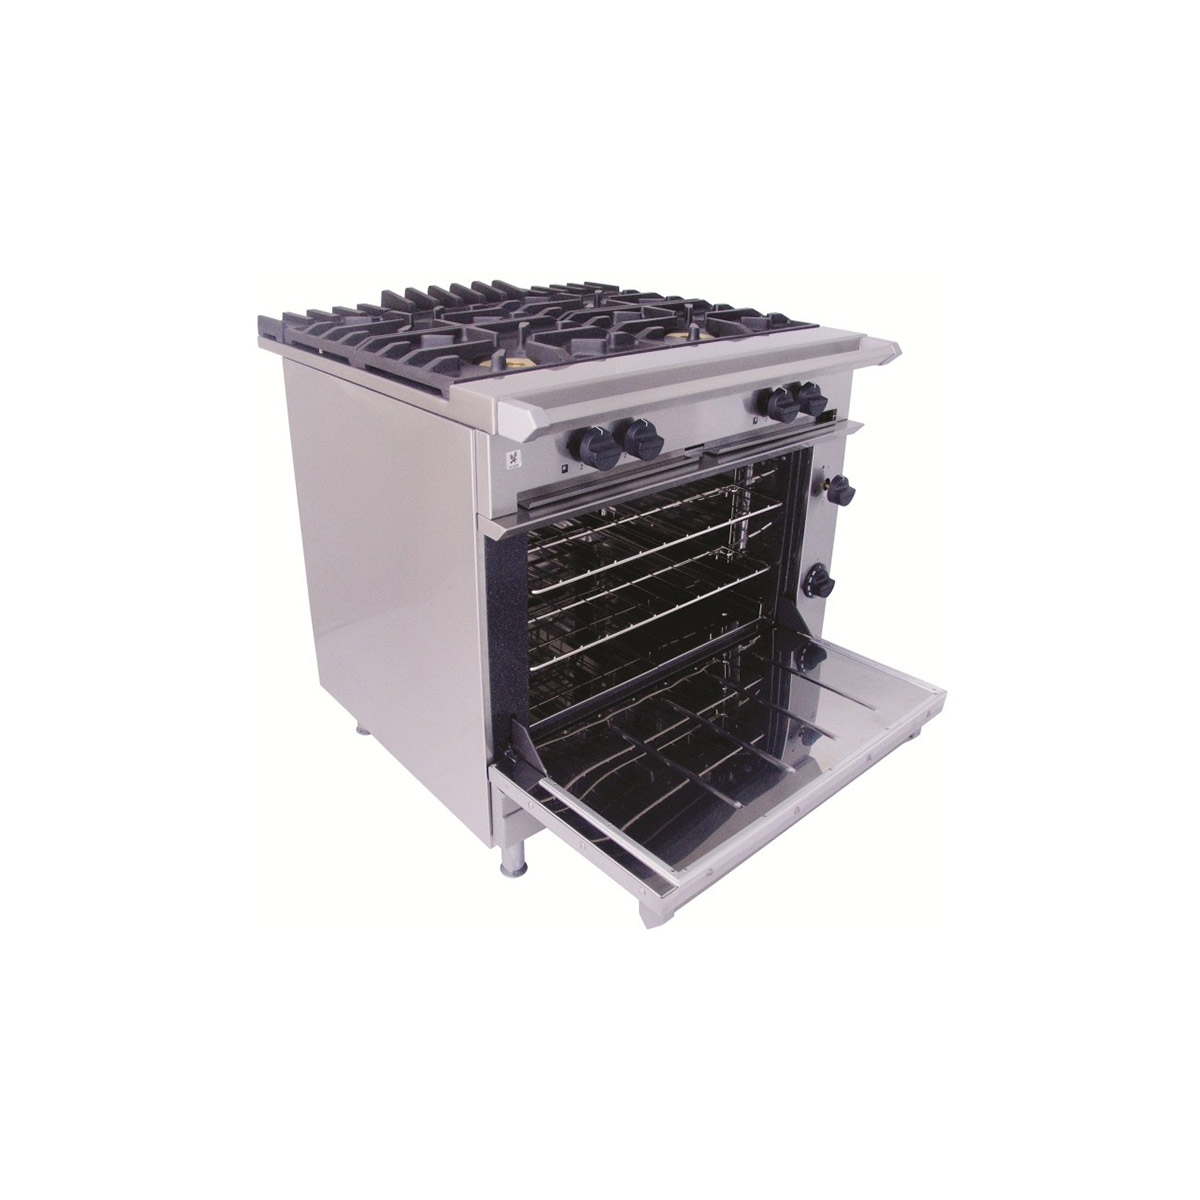 Falcon Chieftain 4x Burner Gas Oven Range On Casters G1006X